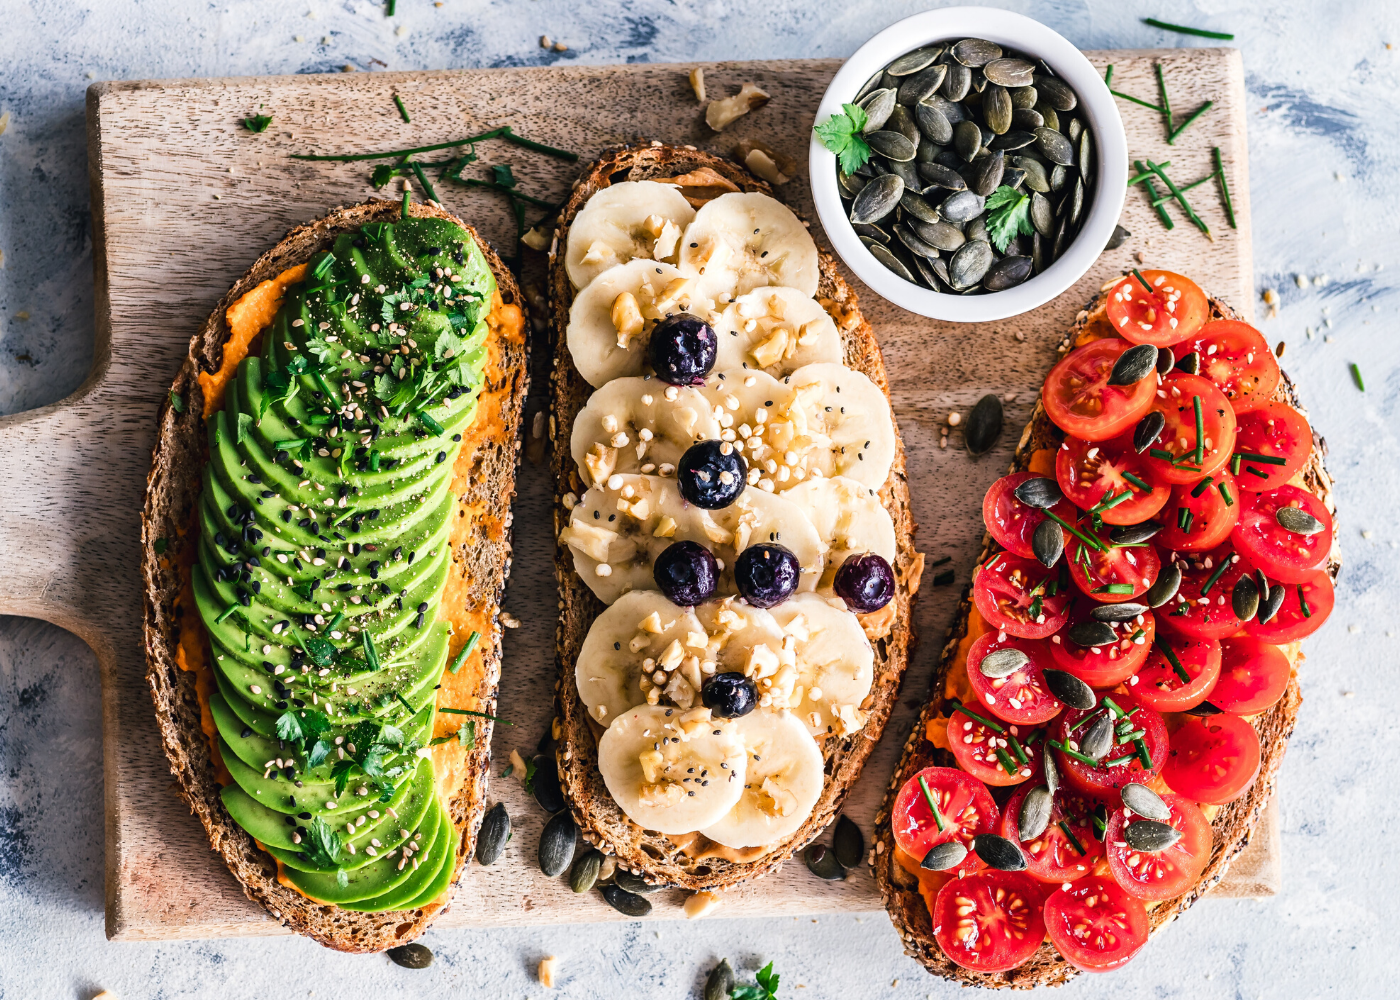 Veganuary: Tips on how to survive this plant-based movement in January